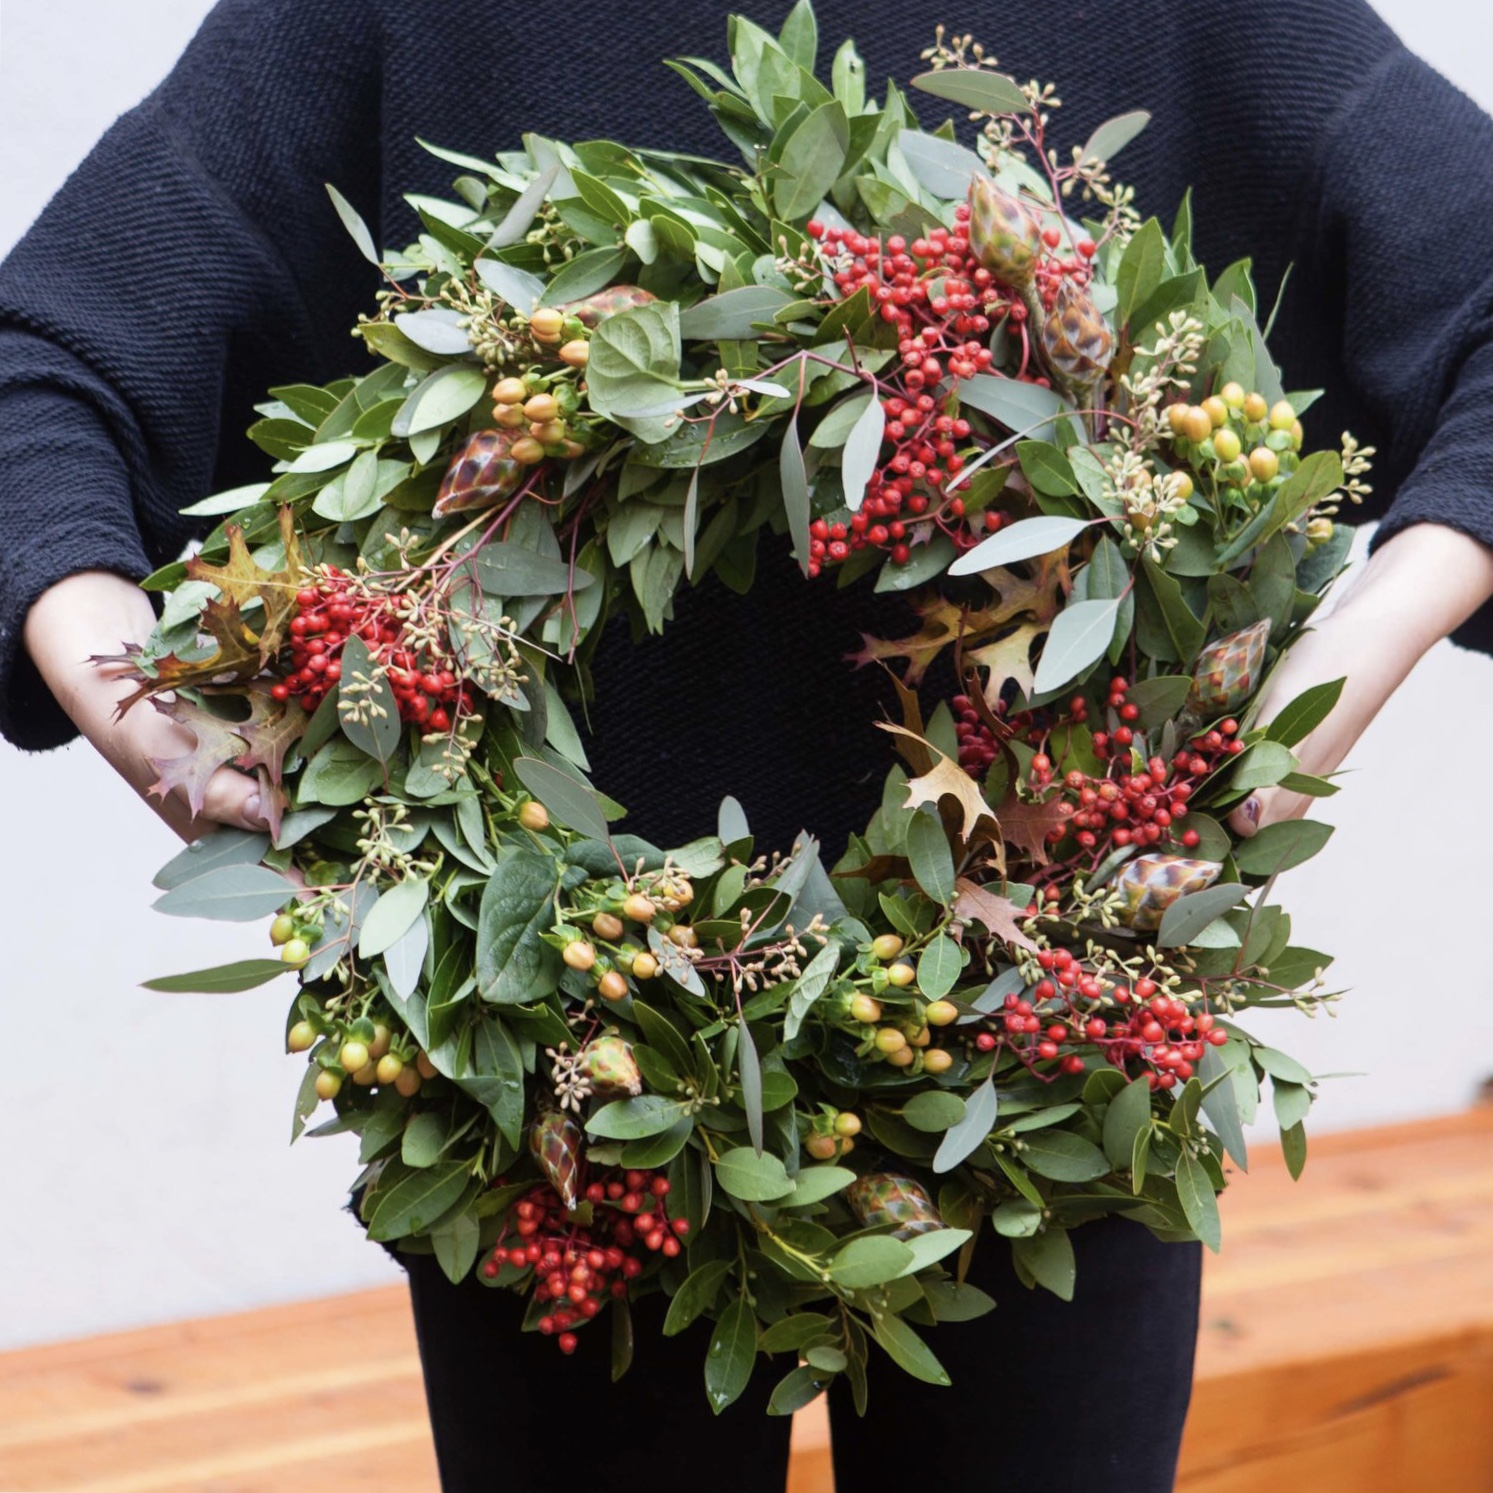 Mission de Flores - Choose from modern or more traditional designs with this Mission-based florist's generously sized wreaths.$85, Harvest Wreath